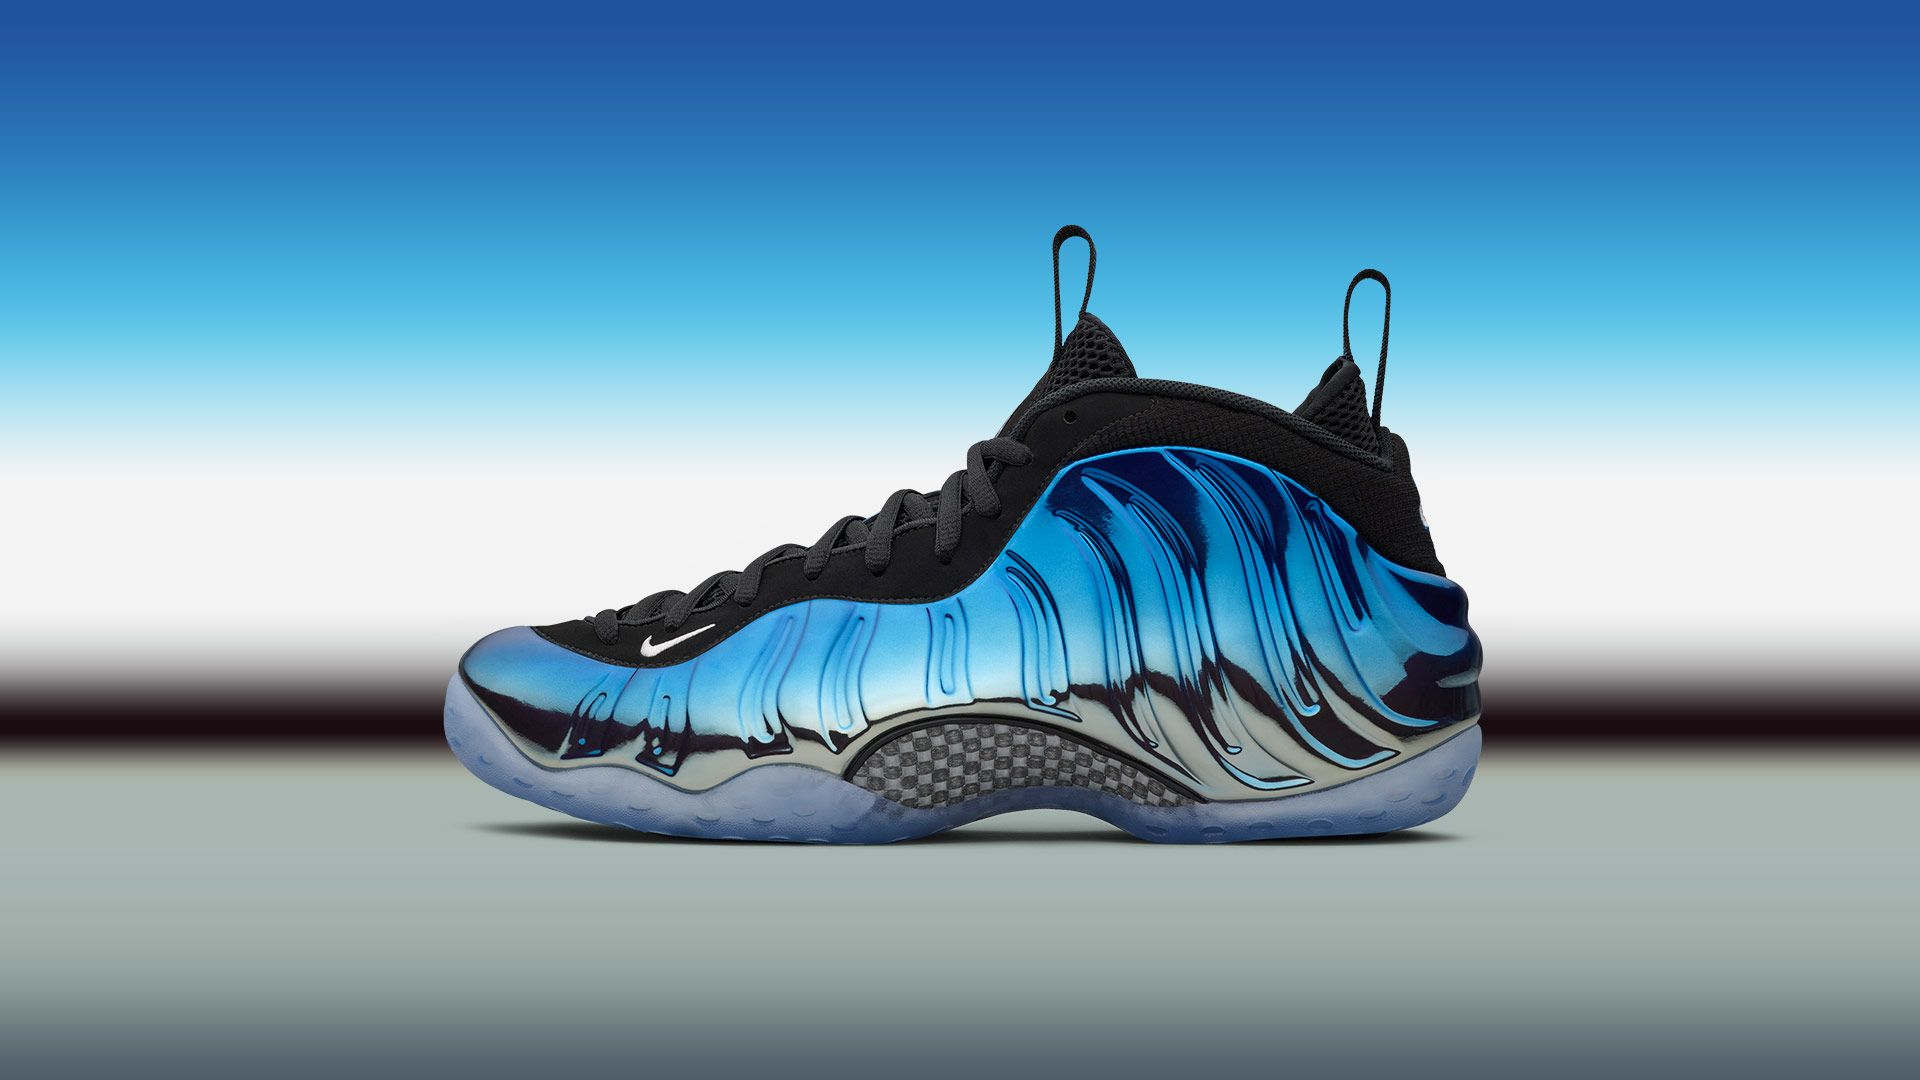 newest 4cee7 13864 Nike Air Foamposite One 'Blue Mirror' Release Date. Nike⁠+ SNKRS